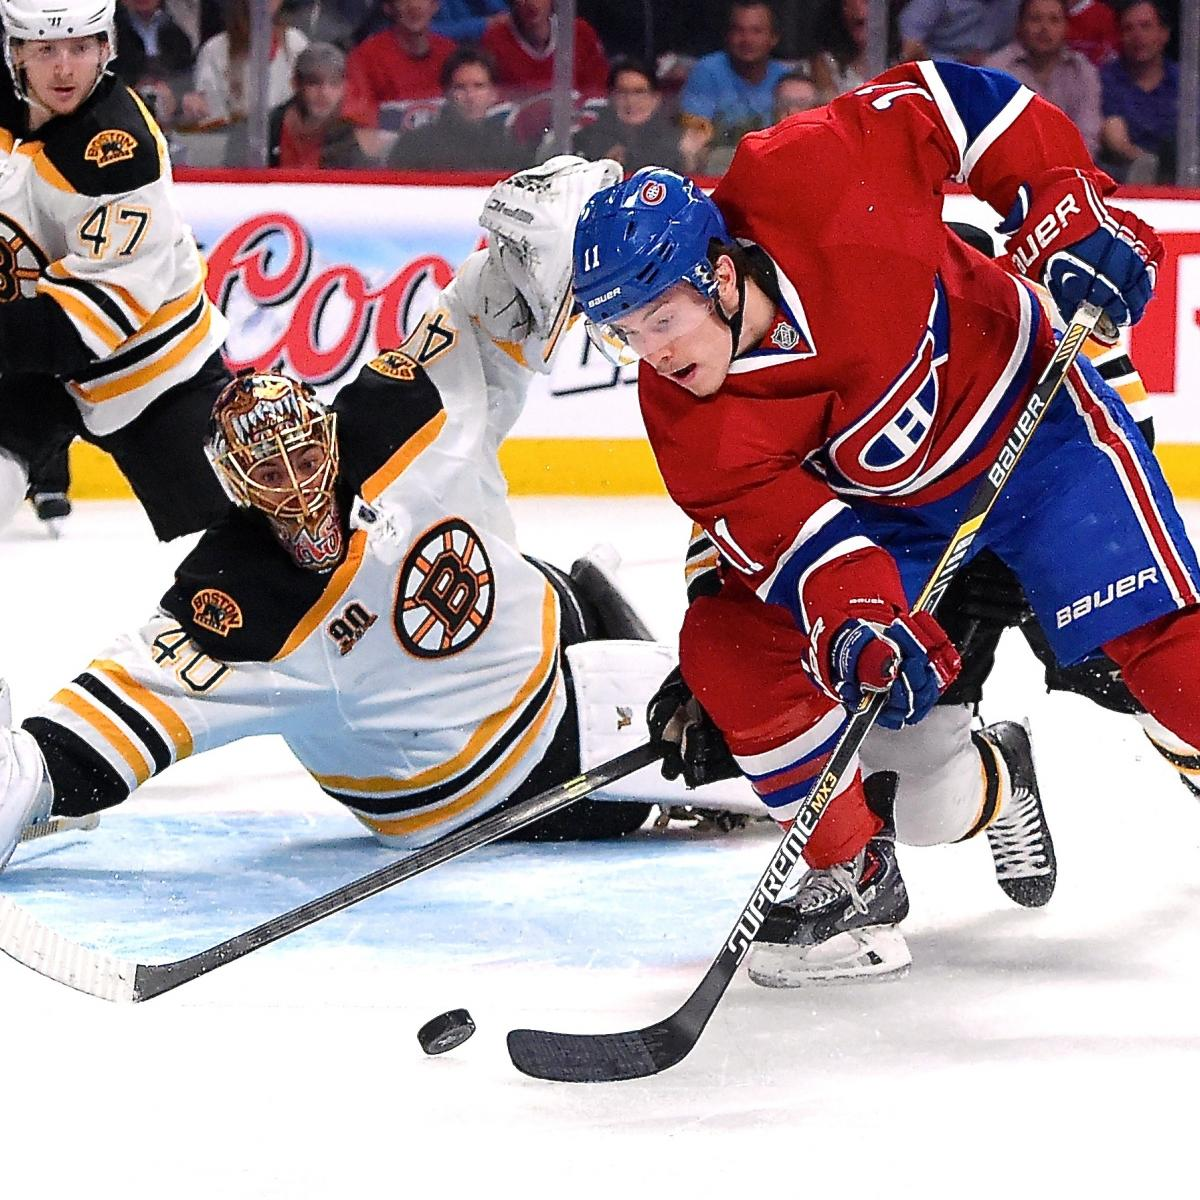 Boston Bruins Vs. Montreal Canadiens Game 6: Live Score